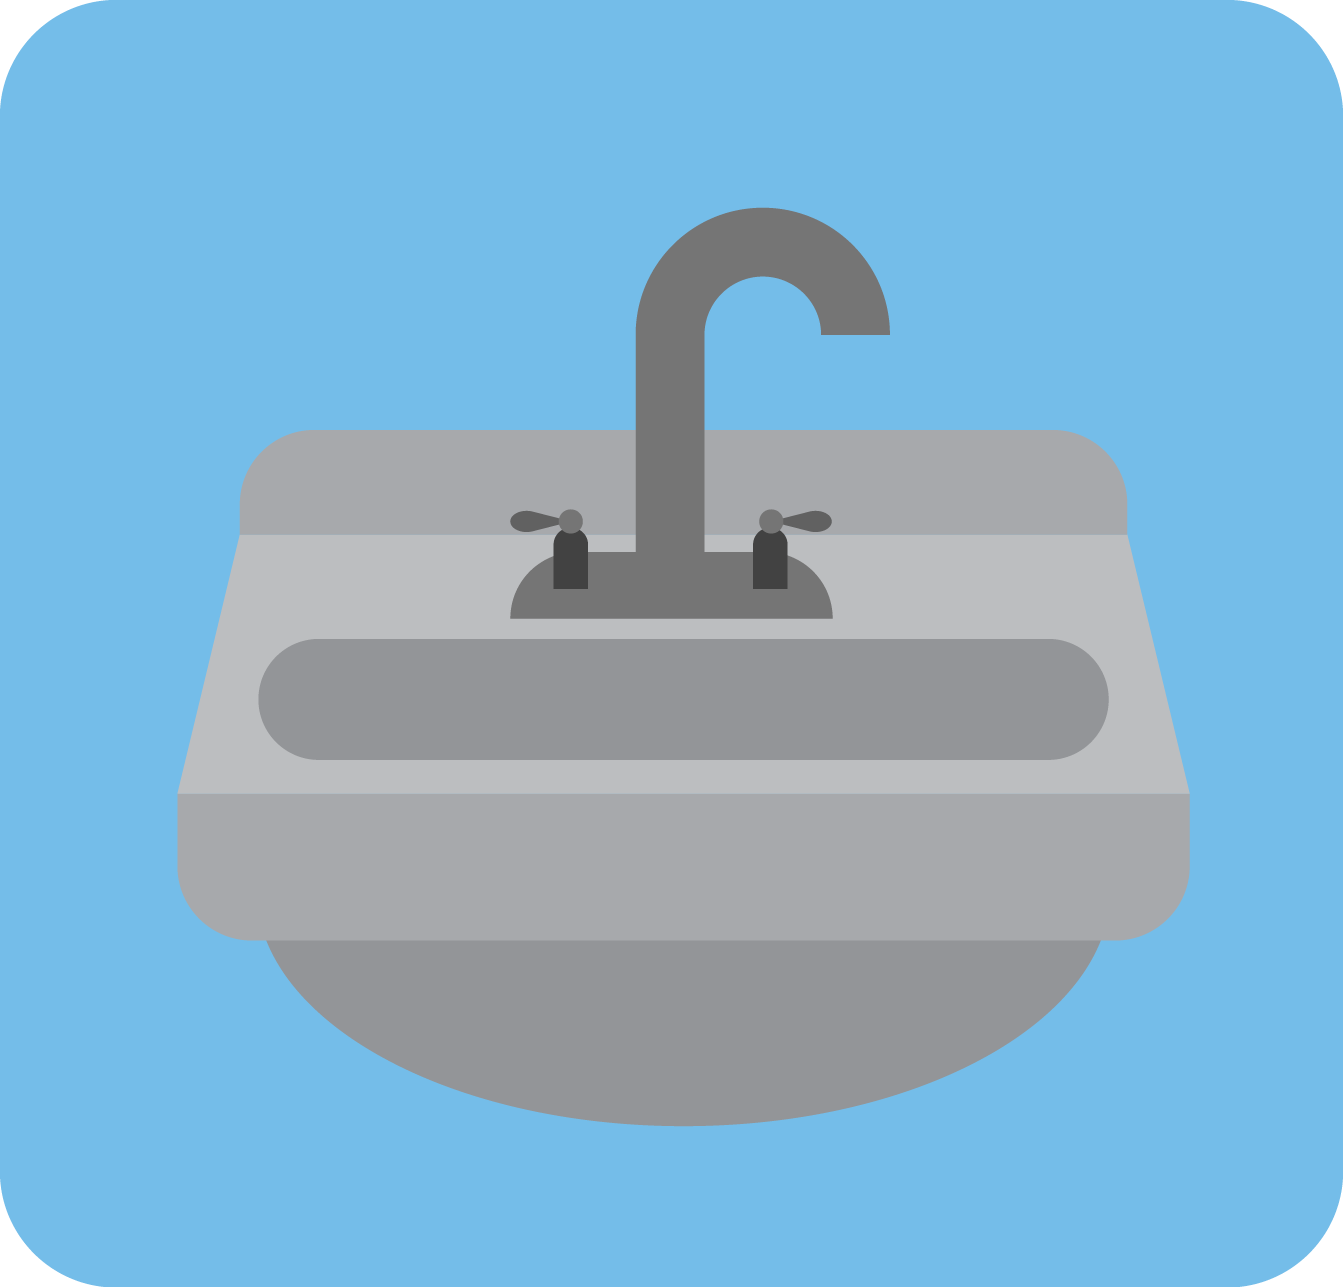 Sink-illustration